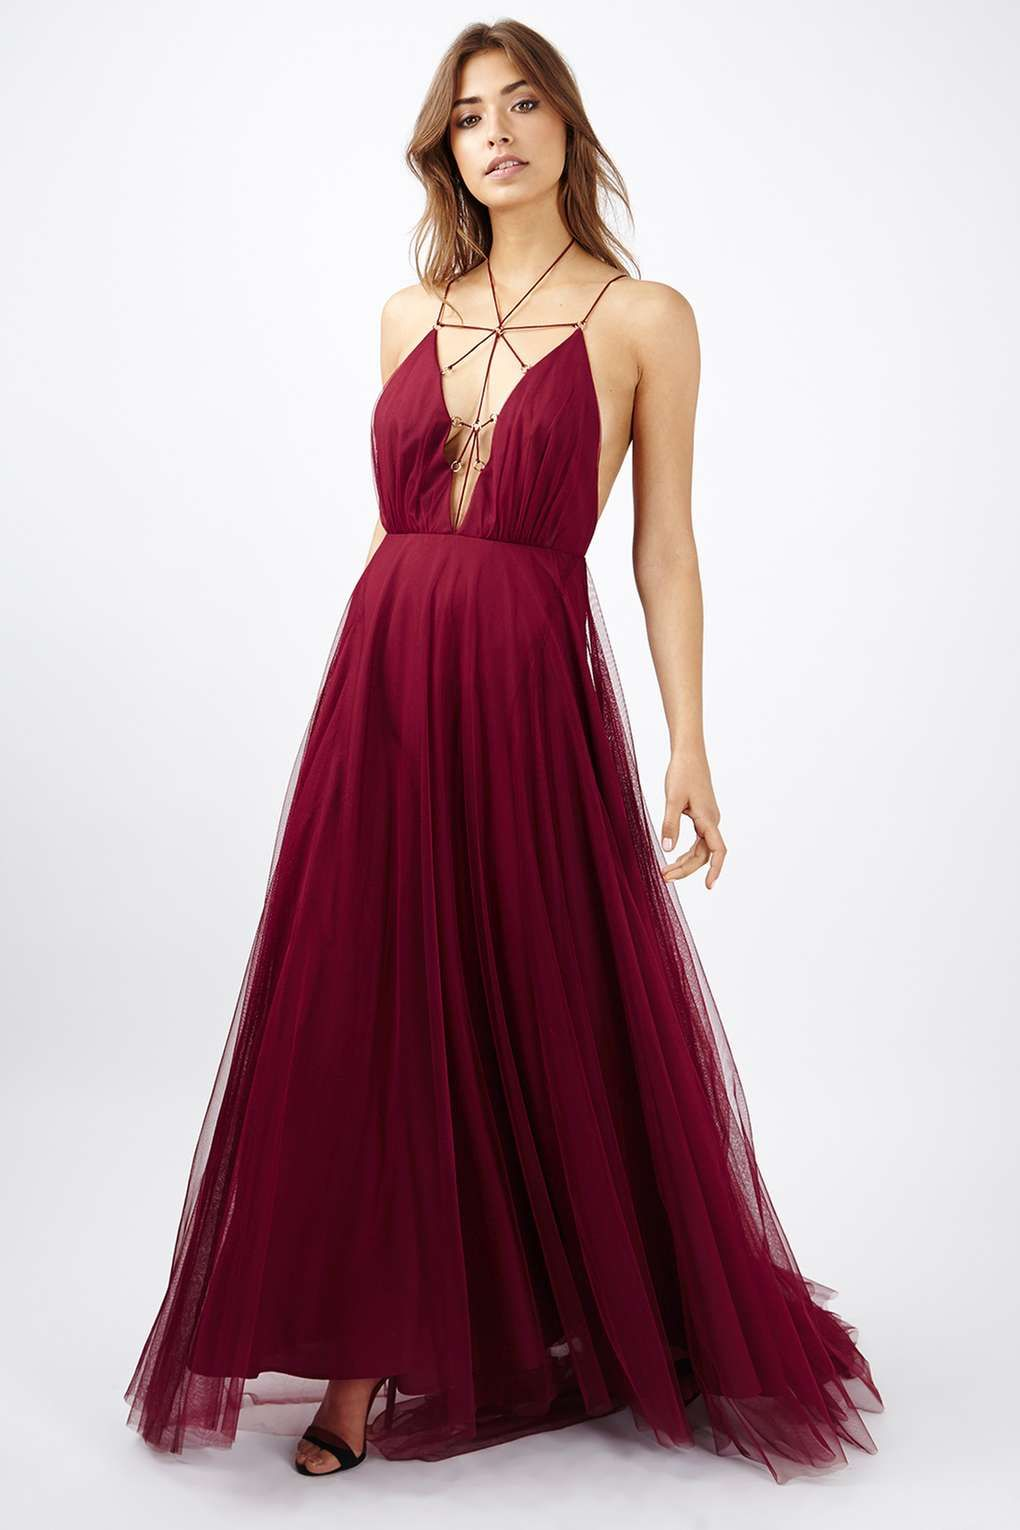 35175db131f This dreamy berry red tulle maxi dress is straight out of a fairy tale.